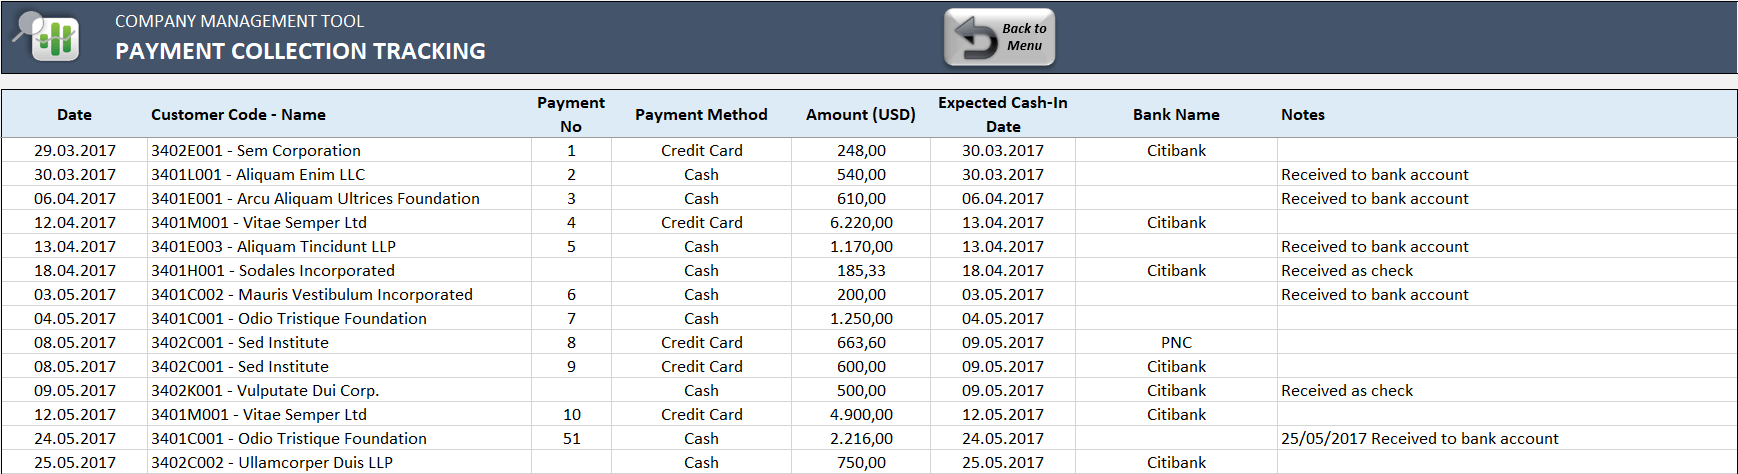 Small-Business-ERP-Template-13-Payment Collection Tracking